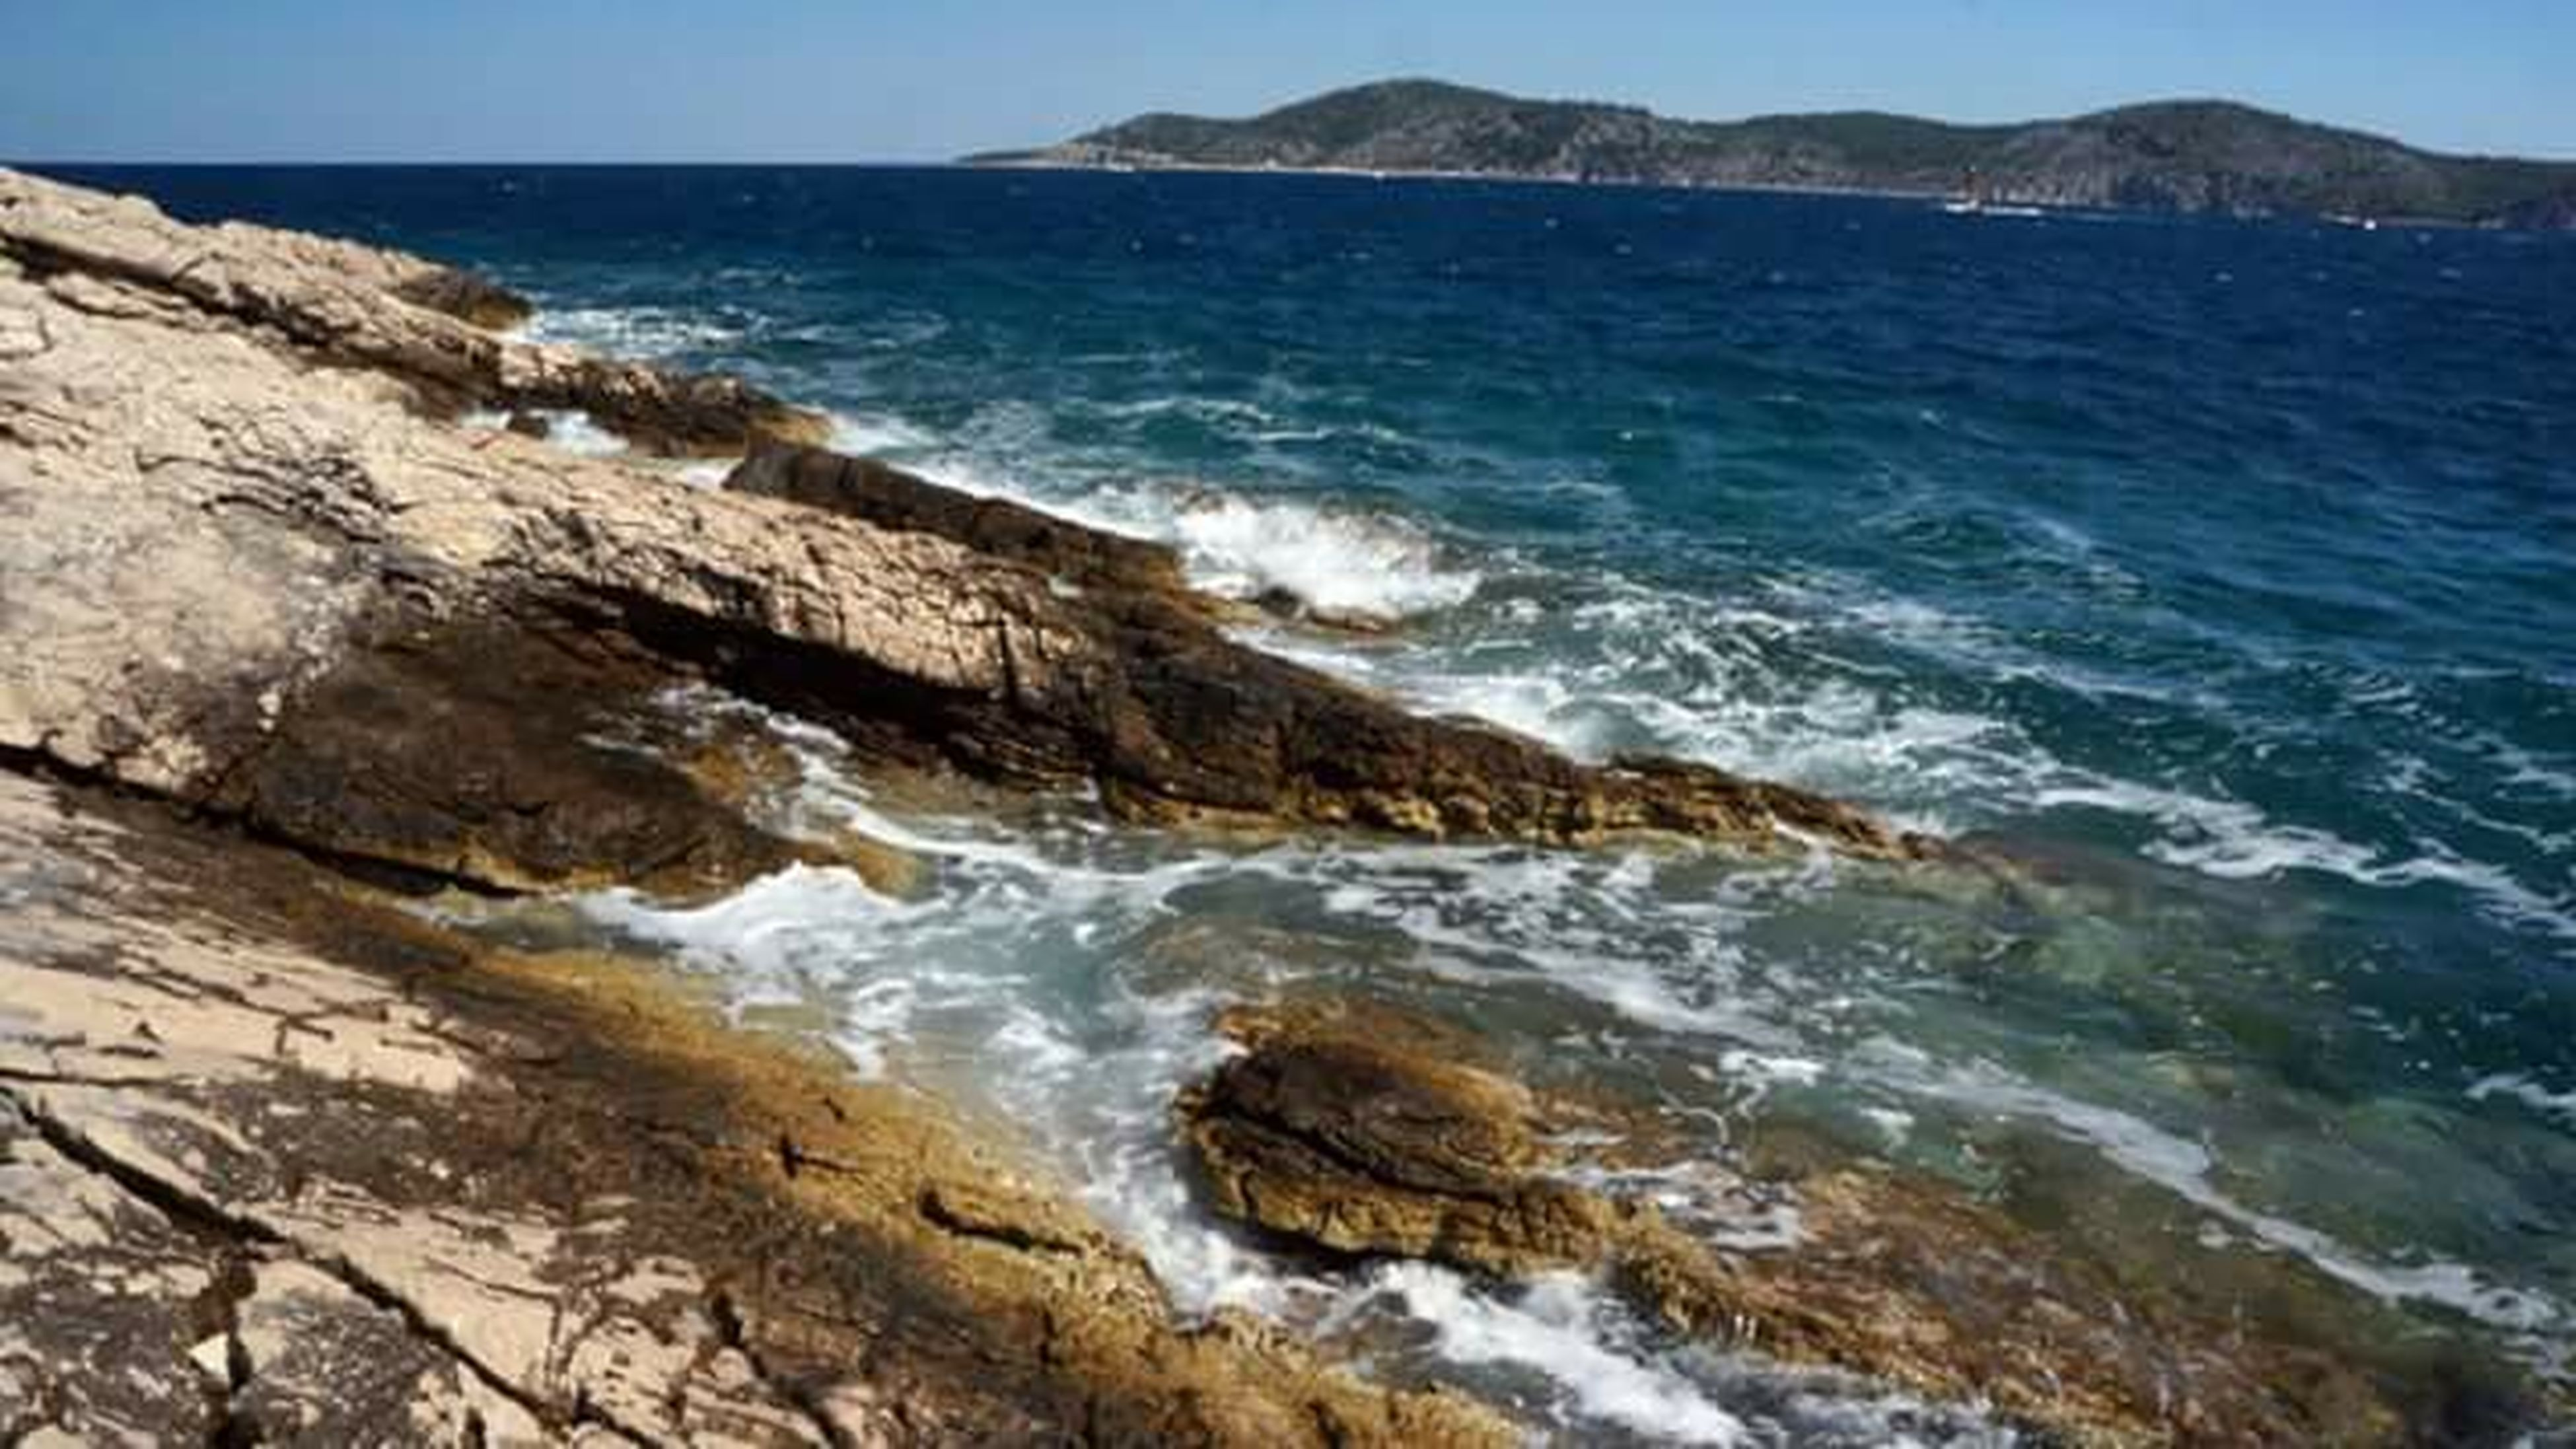 water, sea, wave, scenics, surf, beauty in nature, tranquil scene, horizon over water, nature, tranquility, beach, rock - object, shore, rock formation, motion, idyllic, blue, coastline, clear sky, rock